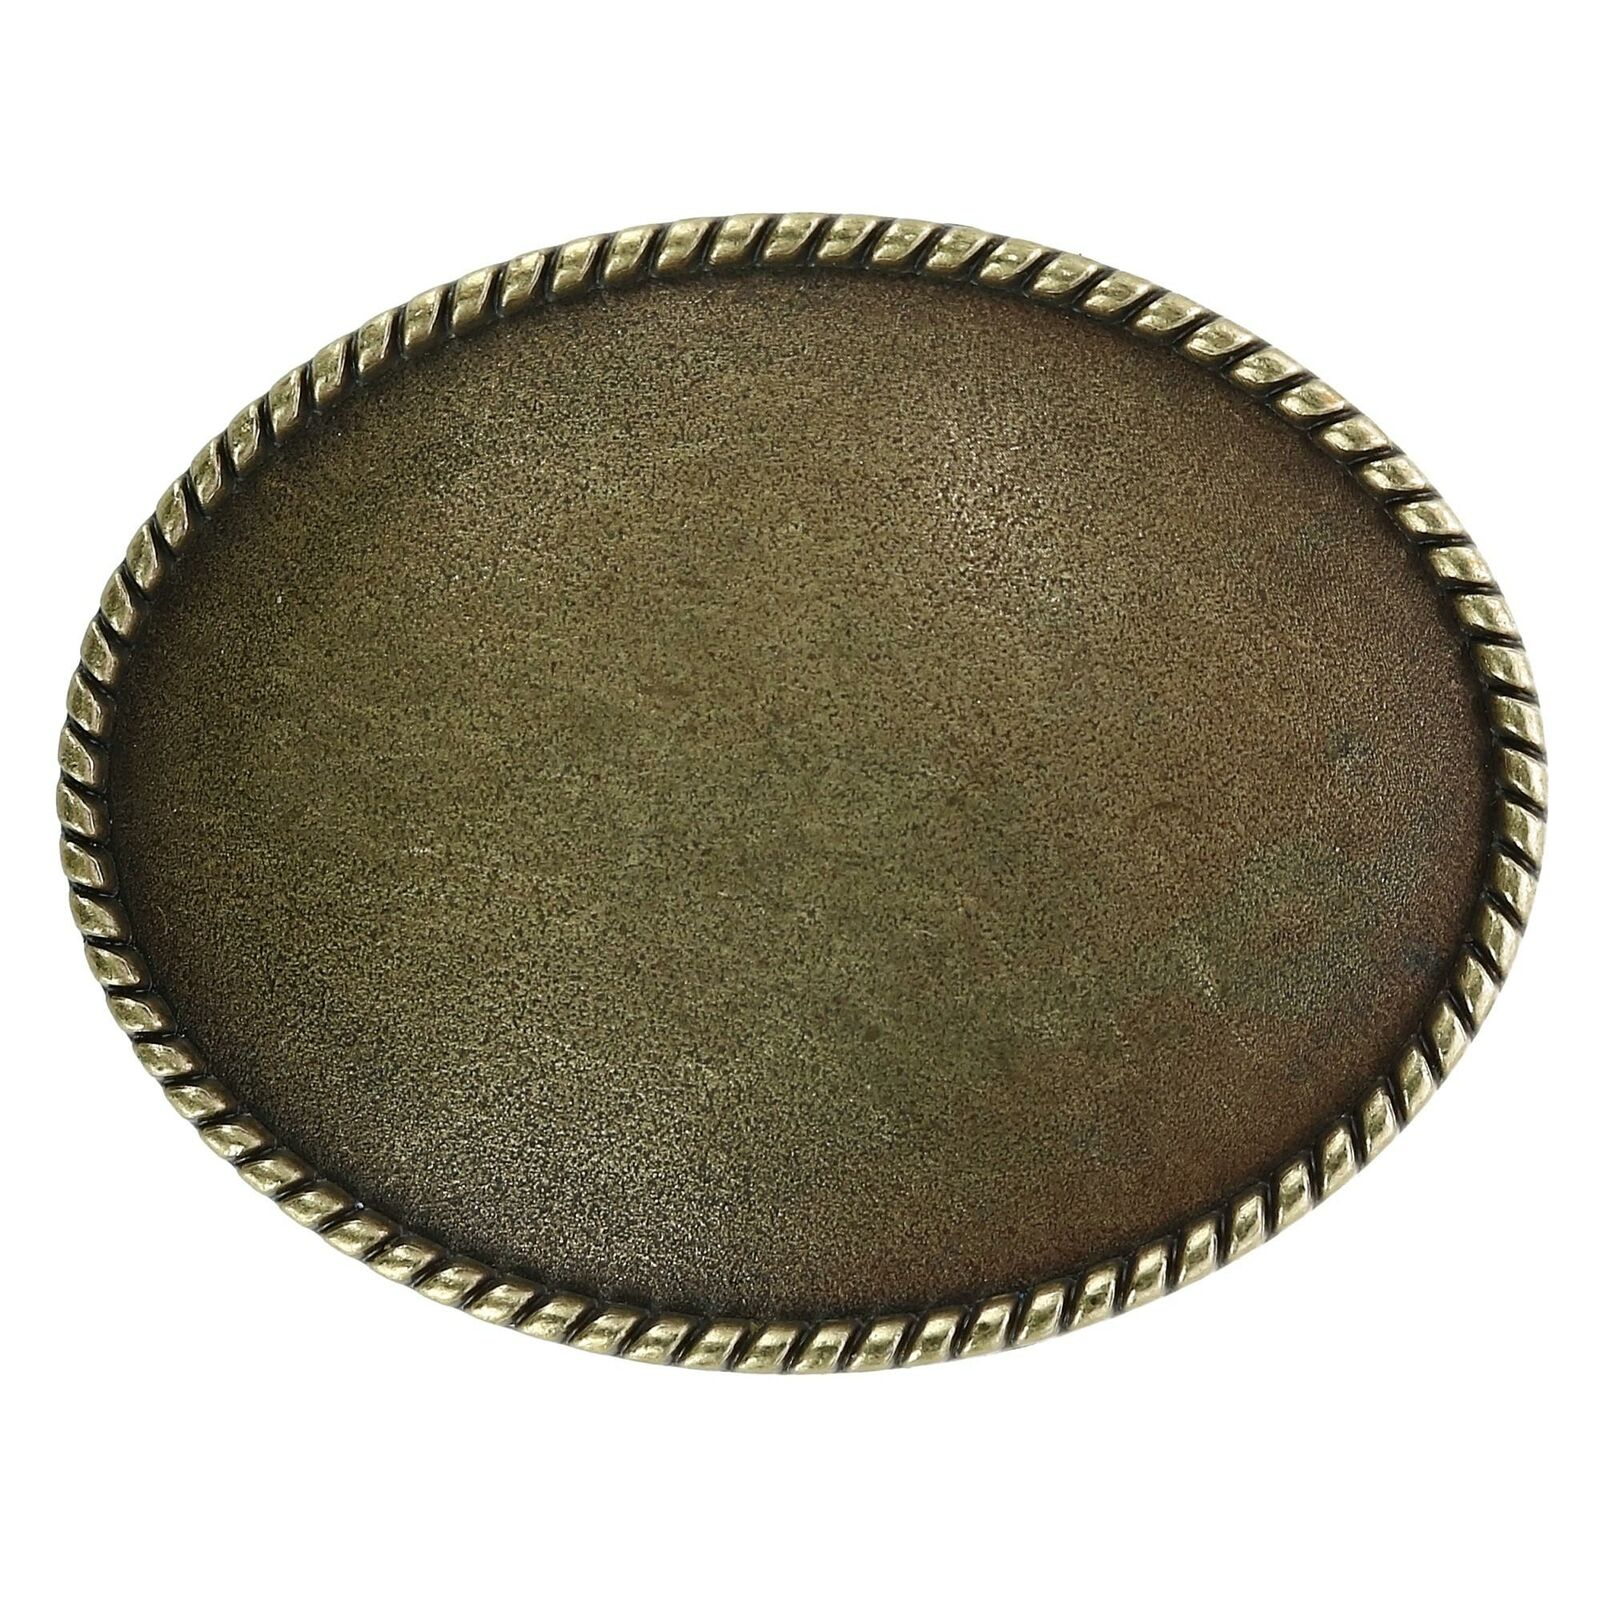 New CTM Blank Oval Belt Buckle with Edge Detail